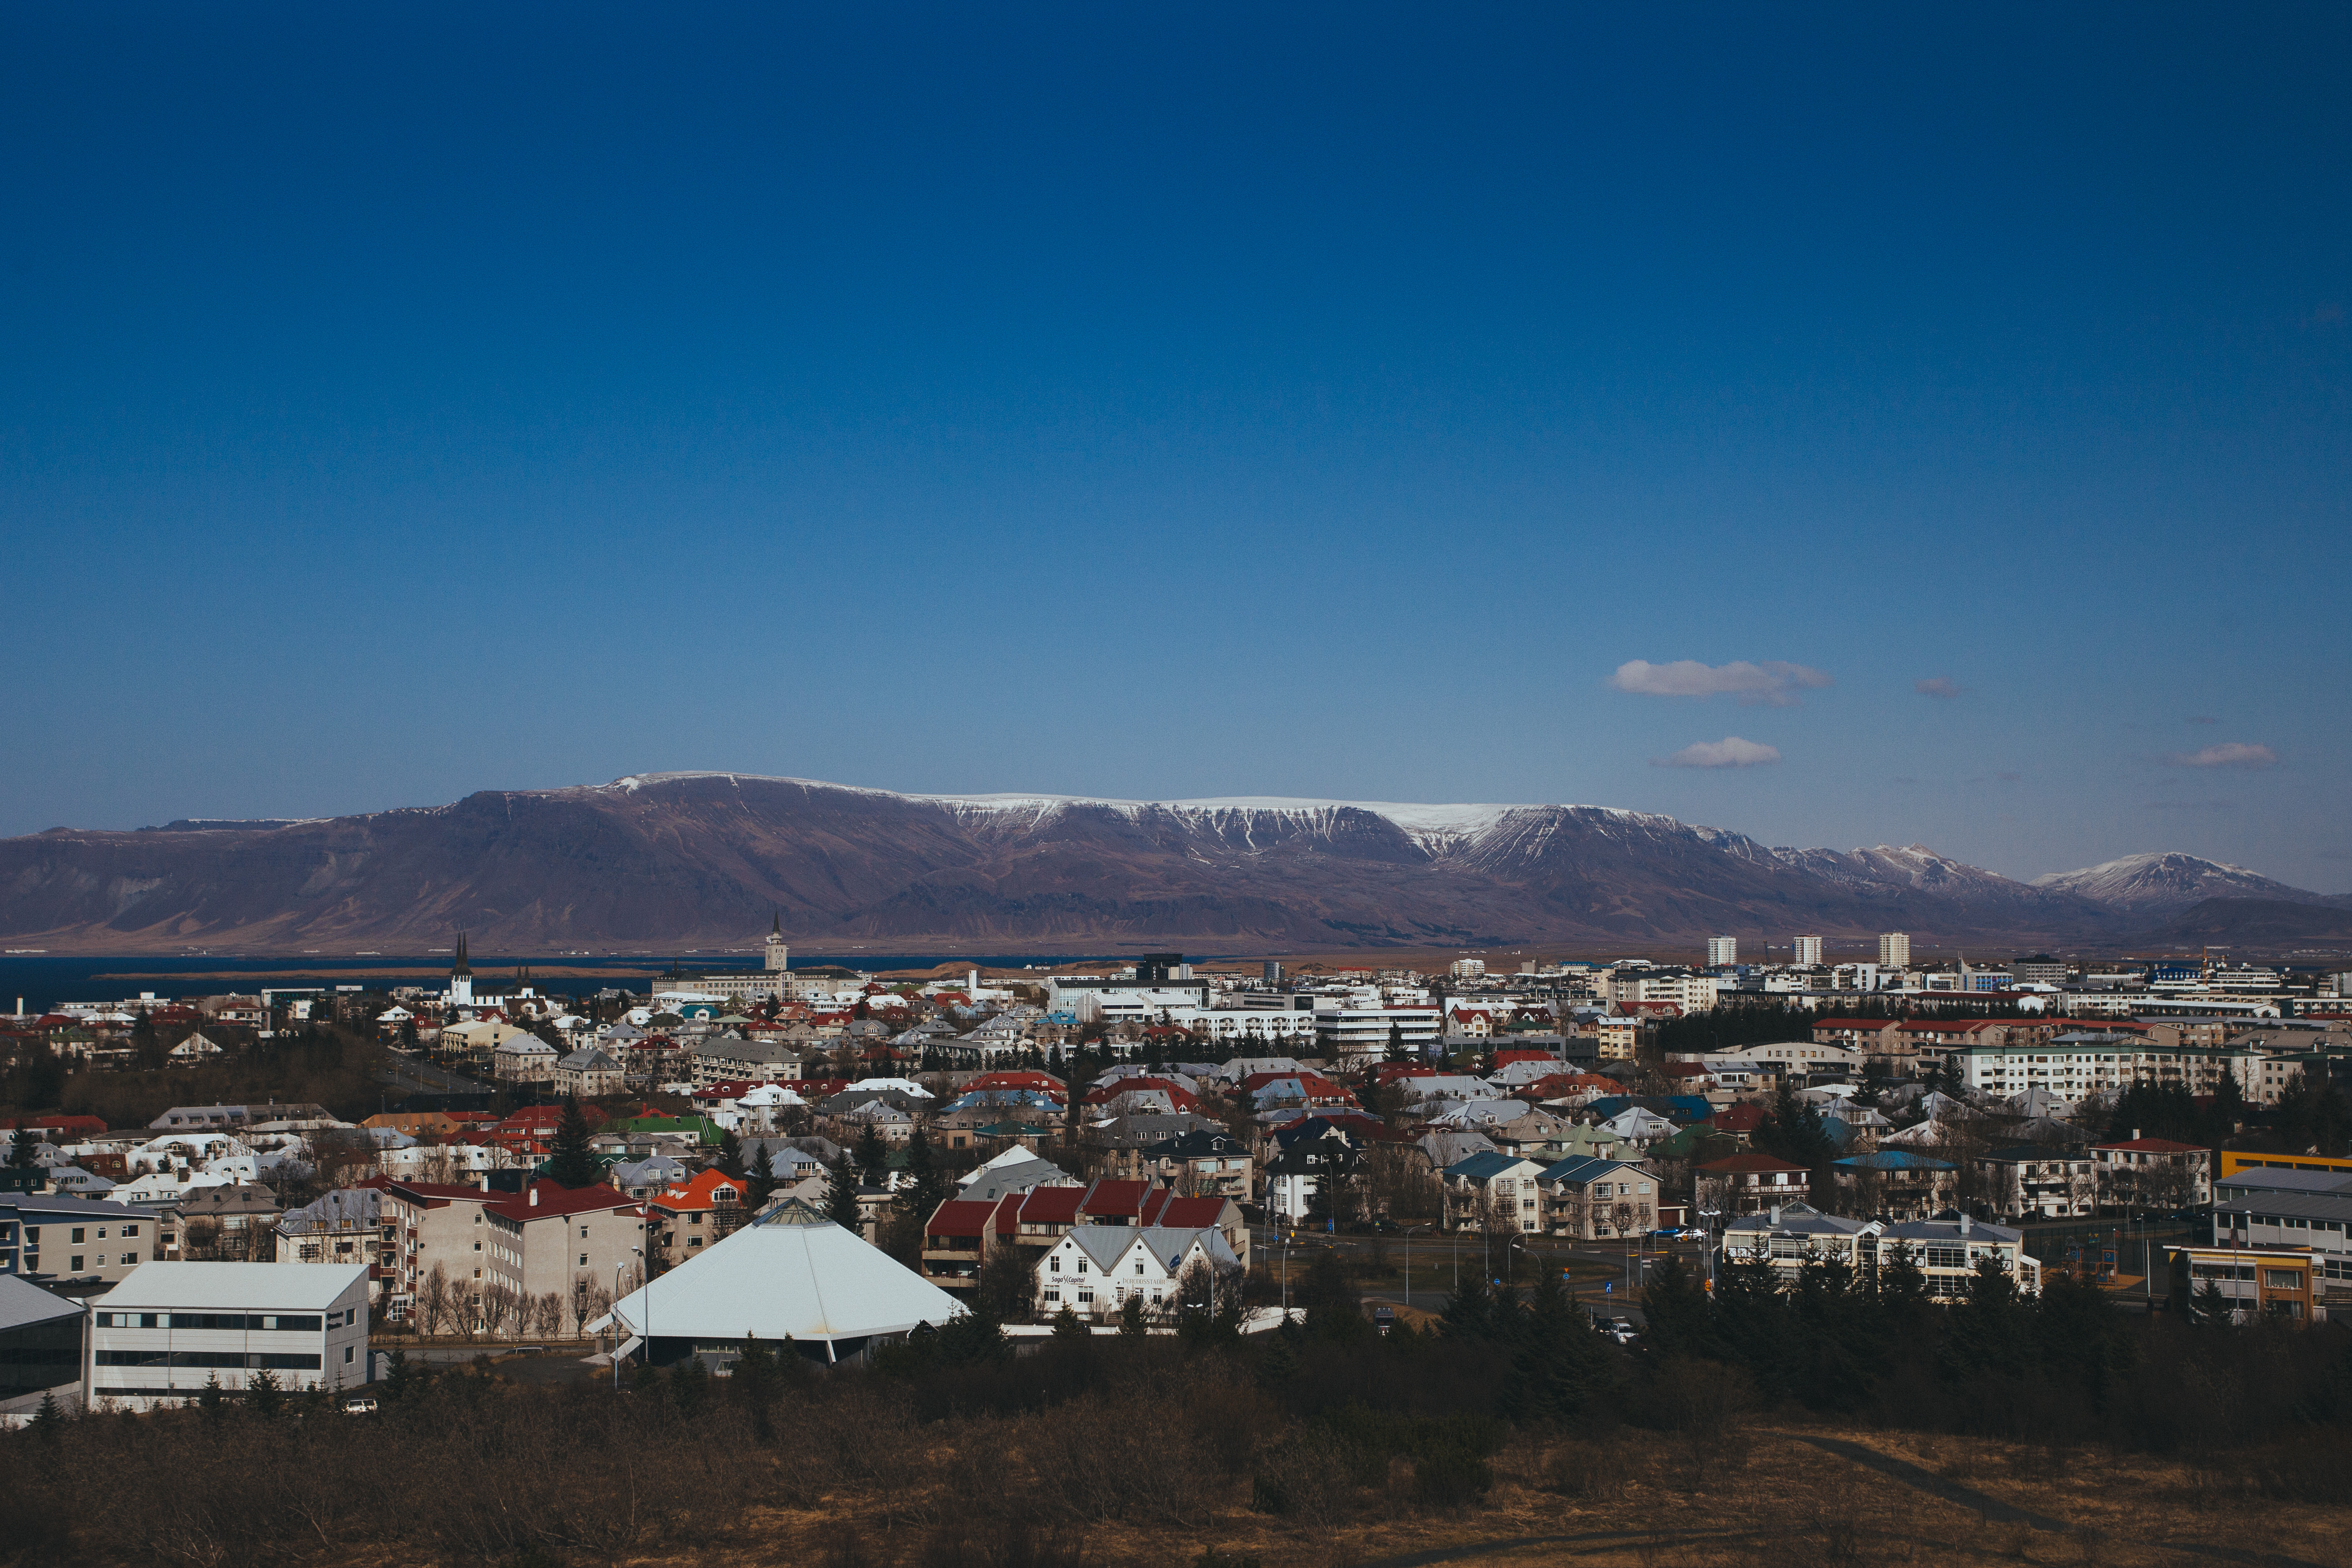 Iceland tested over 30,000 people for COVID antibodies